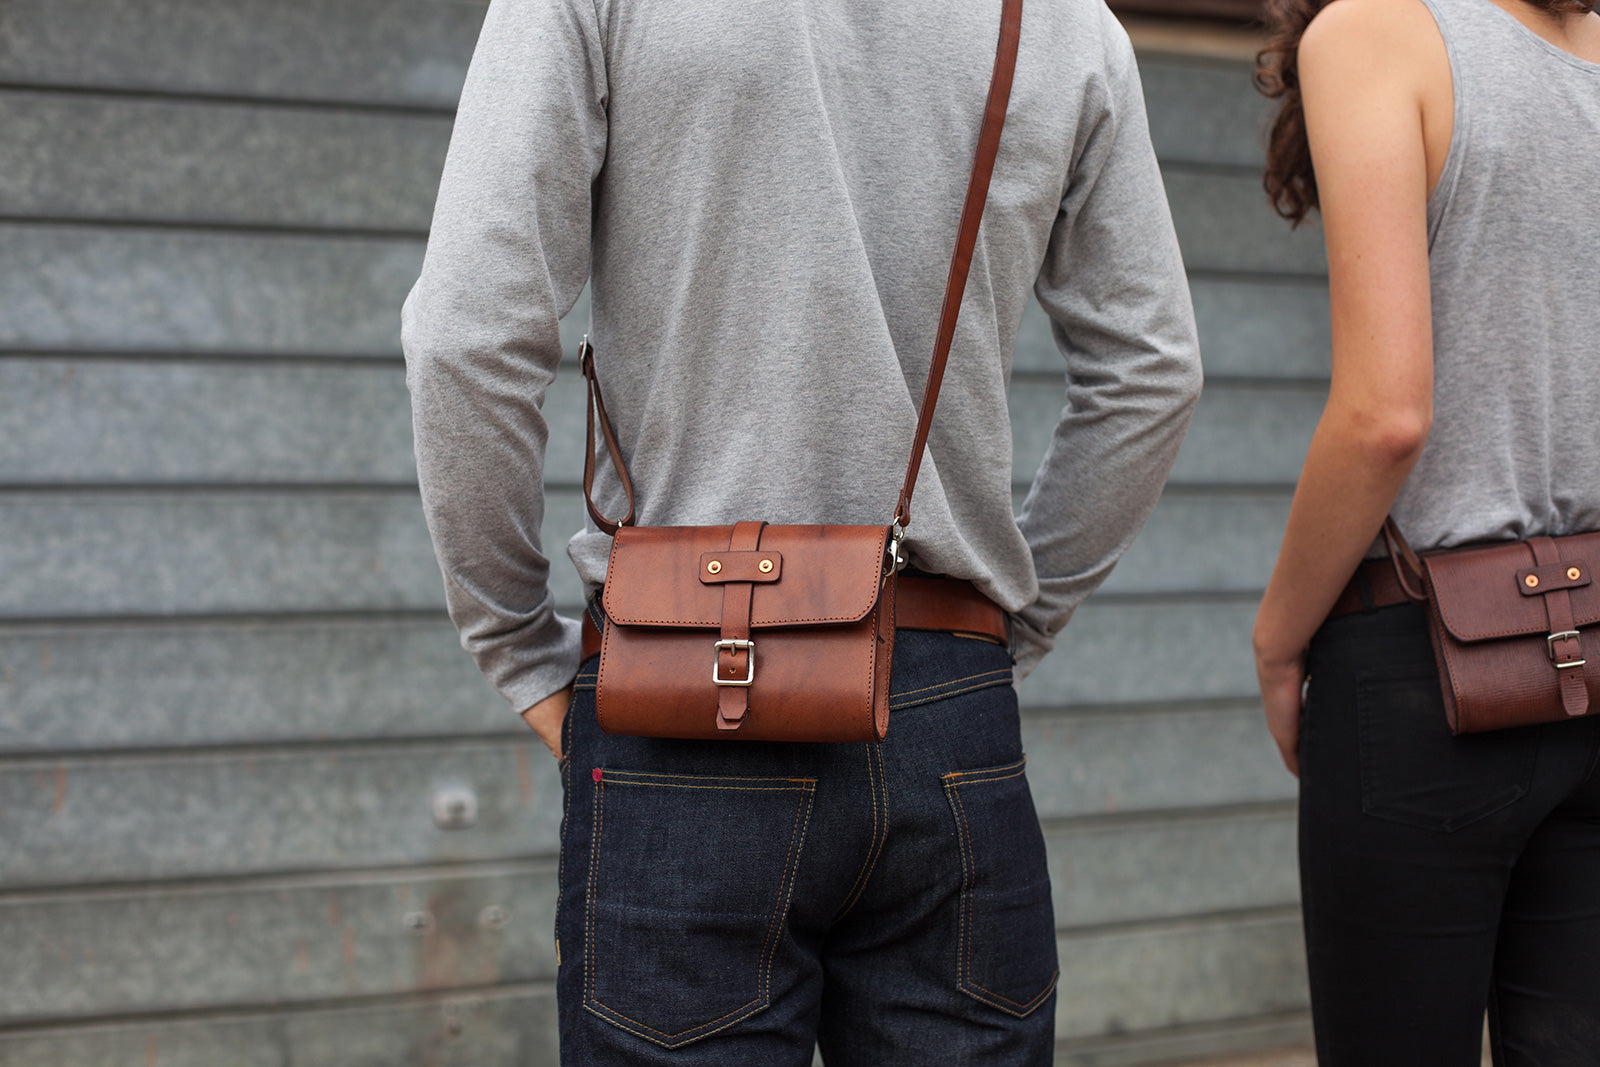 Mini Baja Travel Bag in Oak Bark Tanned Leather by Tanner Bates